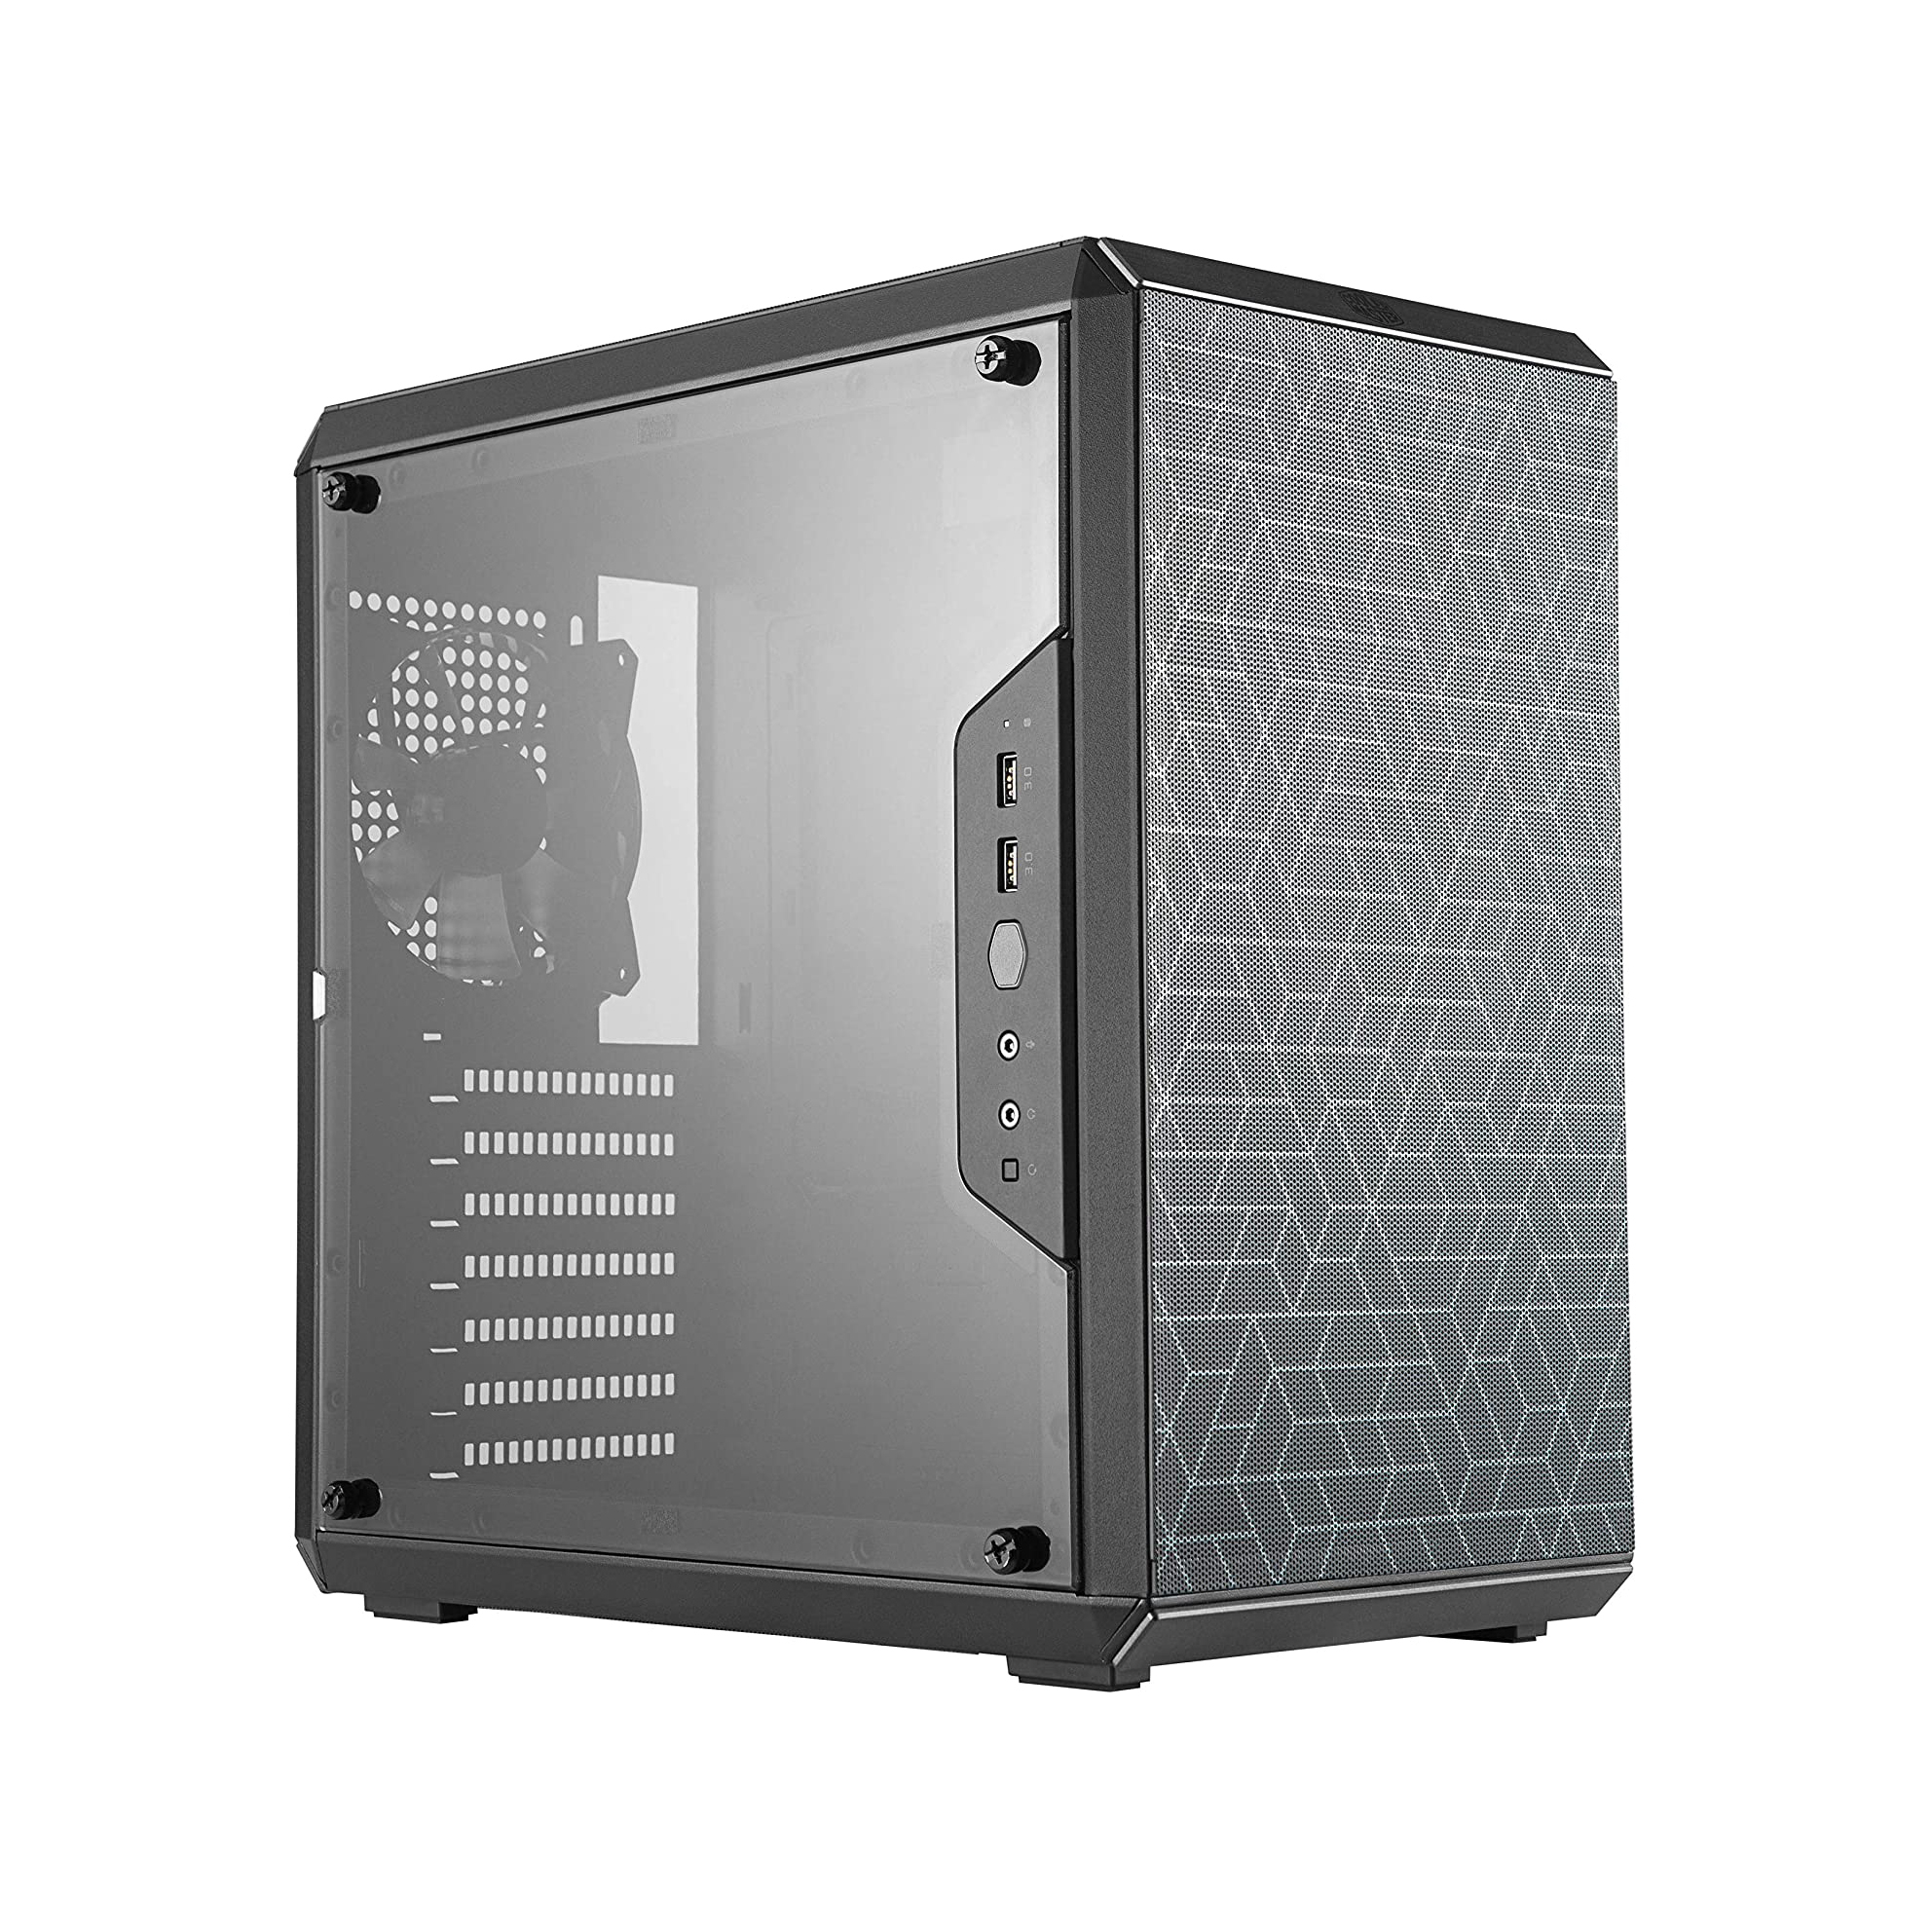 CASE COOLER MASTER GAMING MASTERBOX Q500L MCB-Q500L-KANN-S00 ,Case & Power Supply